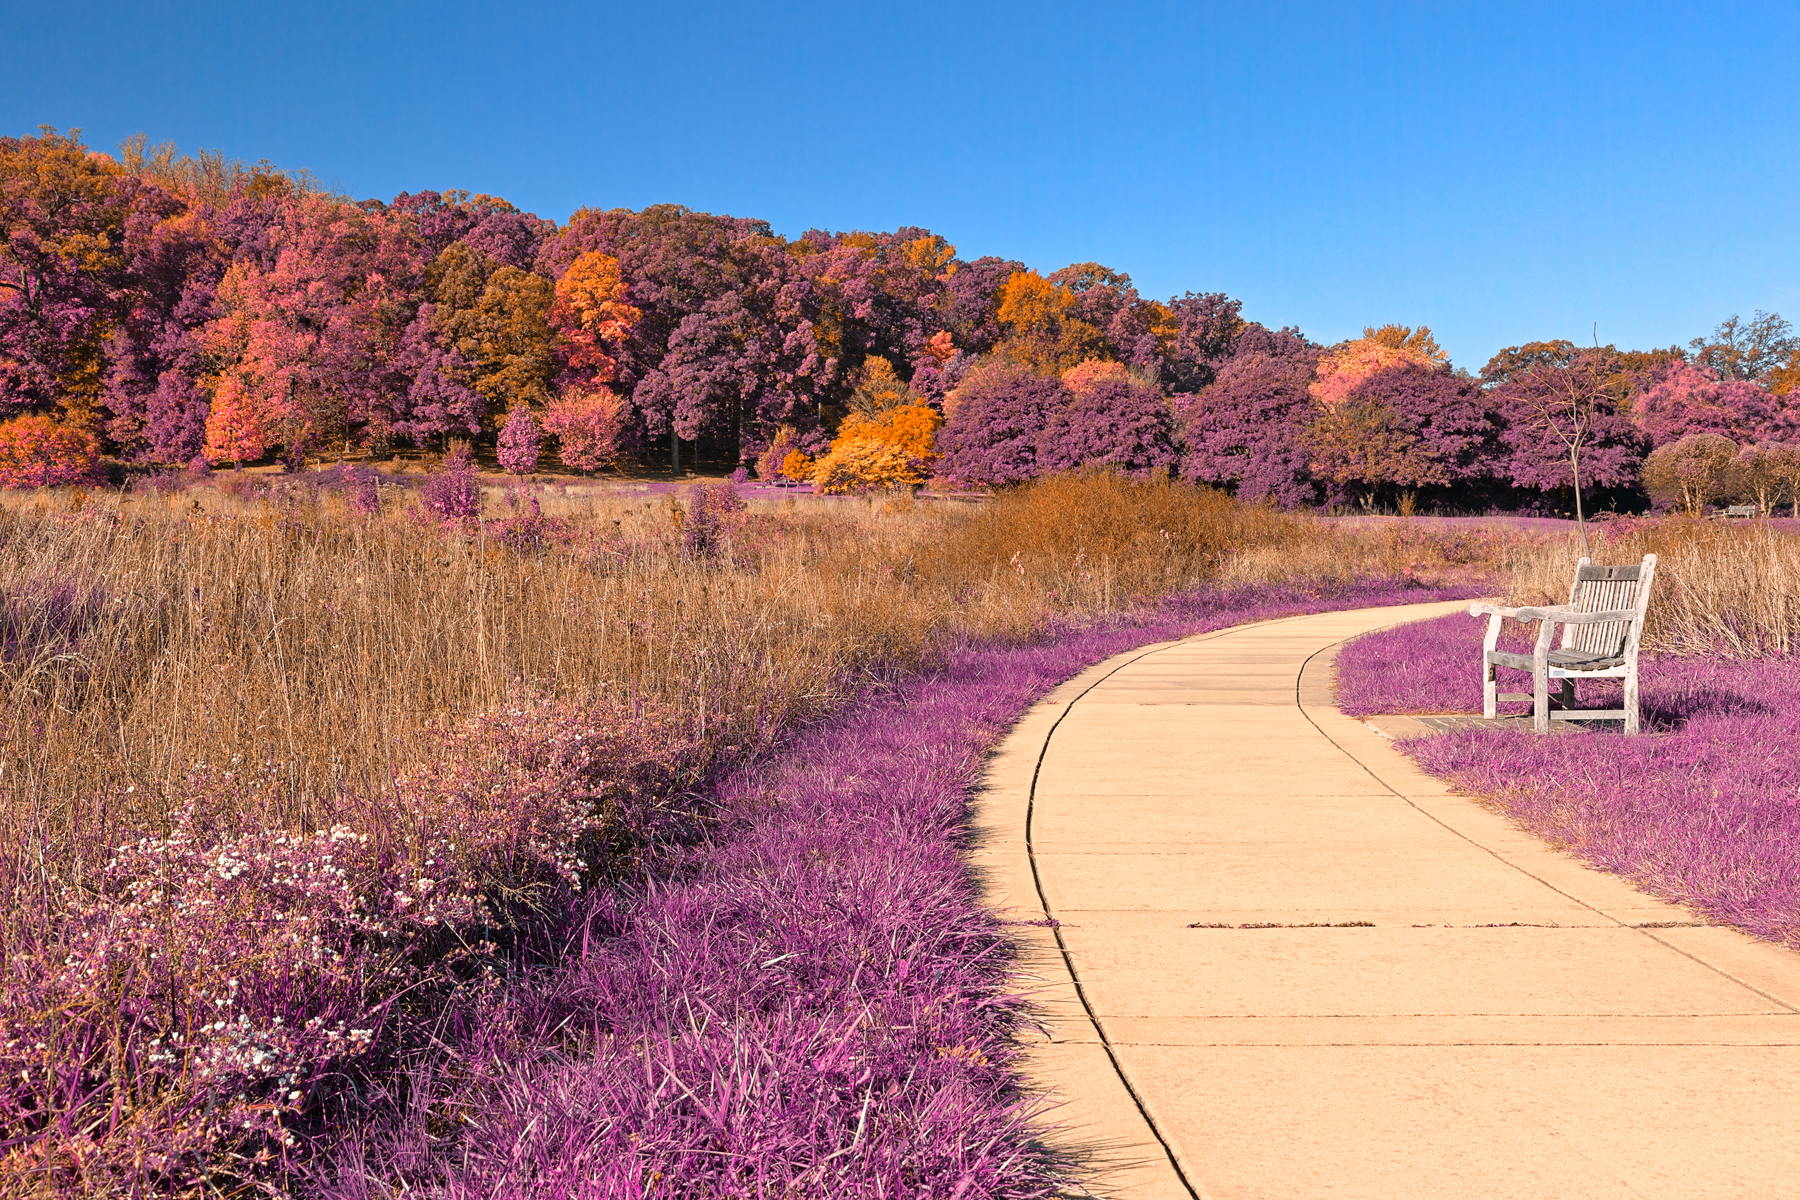 Winding lavender fantasy path - hdr photo